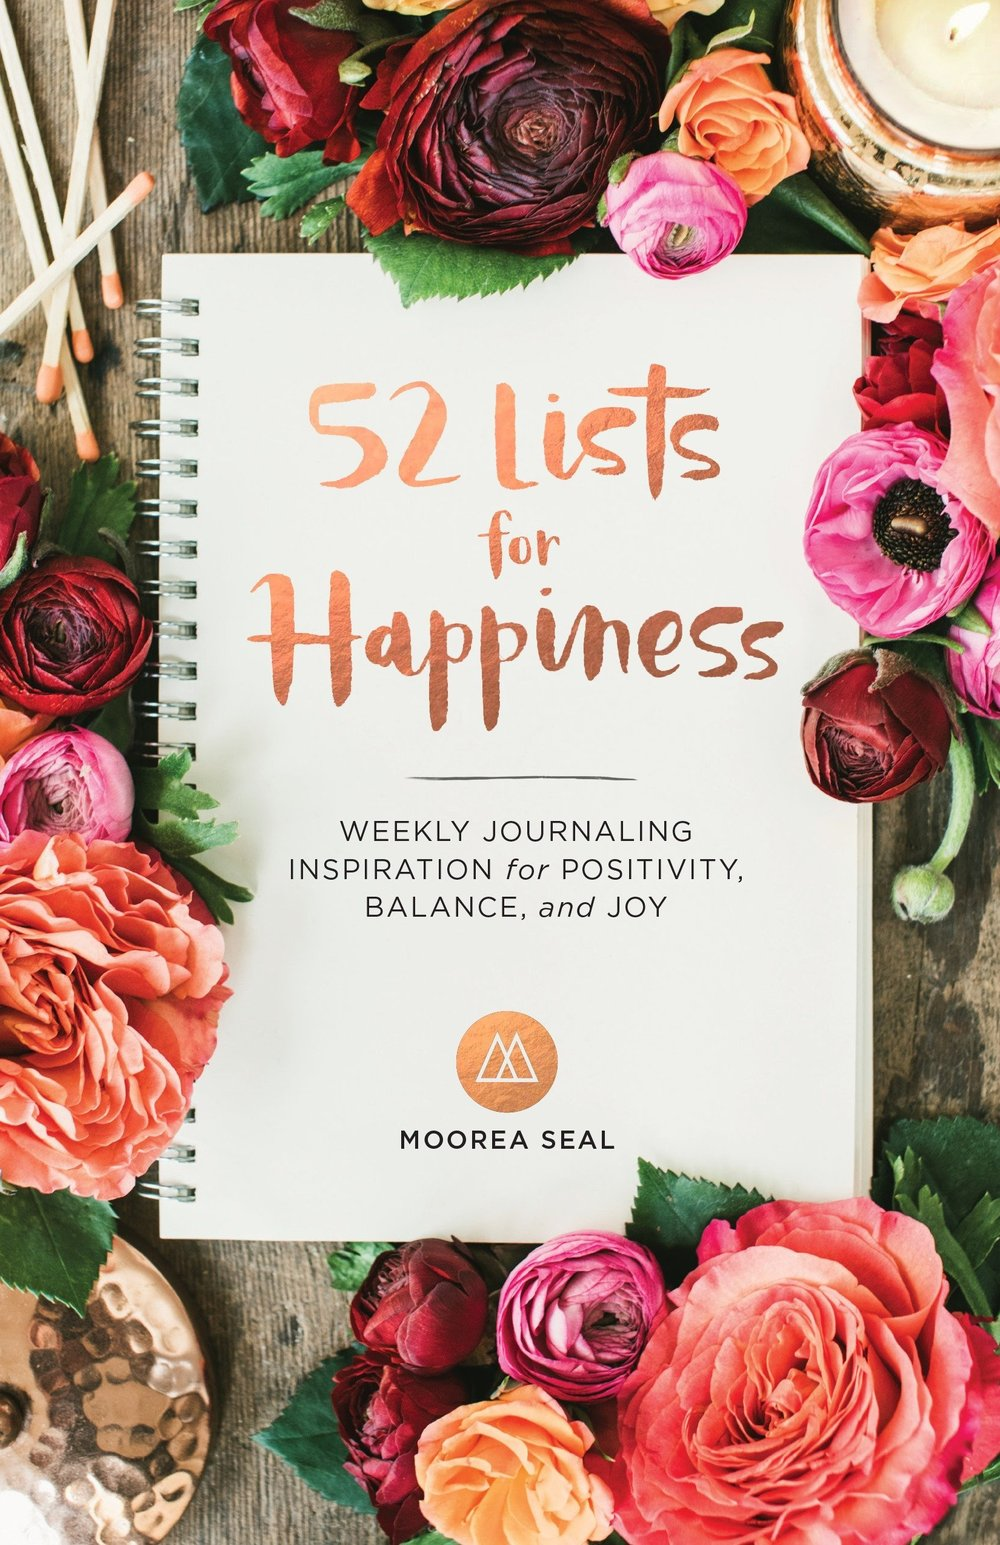 17 Ways to Combat the Winter Blues or Seasonal Depression | 52 Lists for Happiness:   Weekly Journaling Inspiration for Positivity, Balance, and Joy